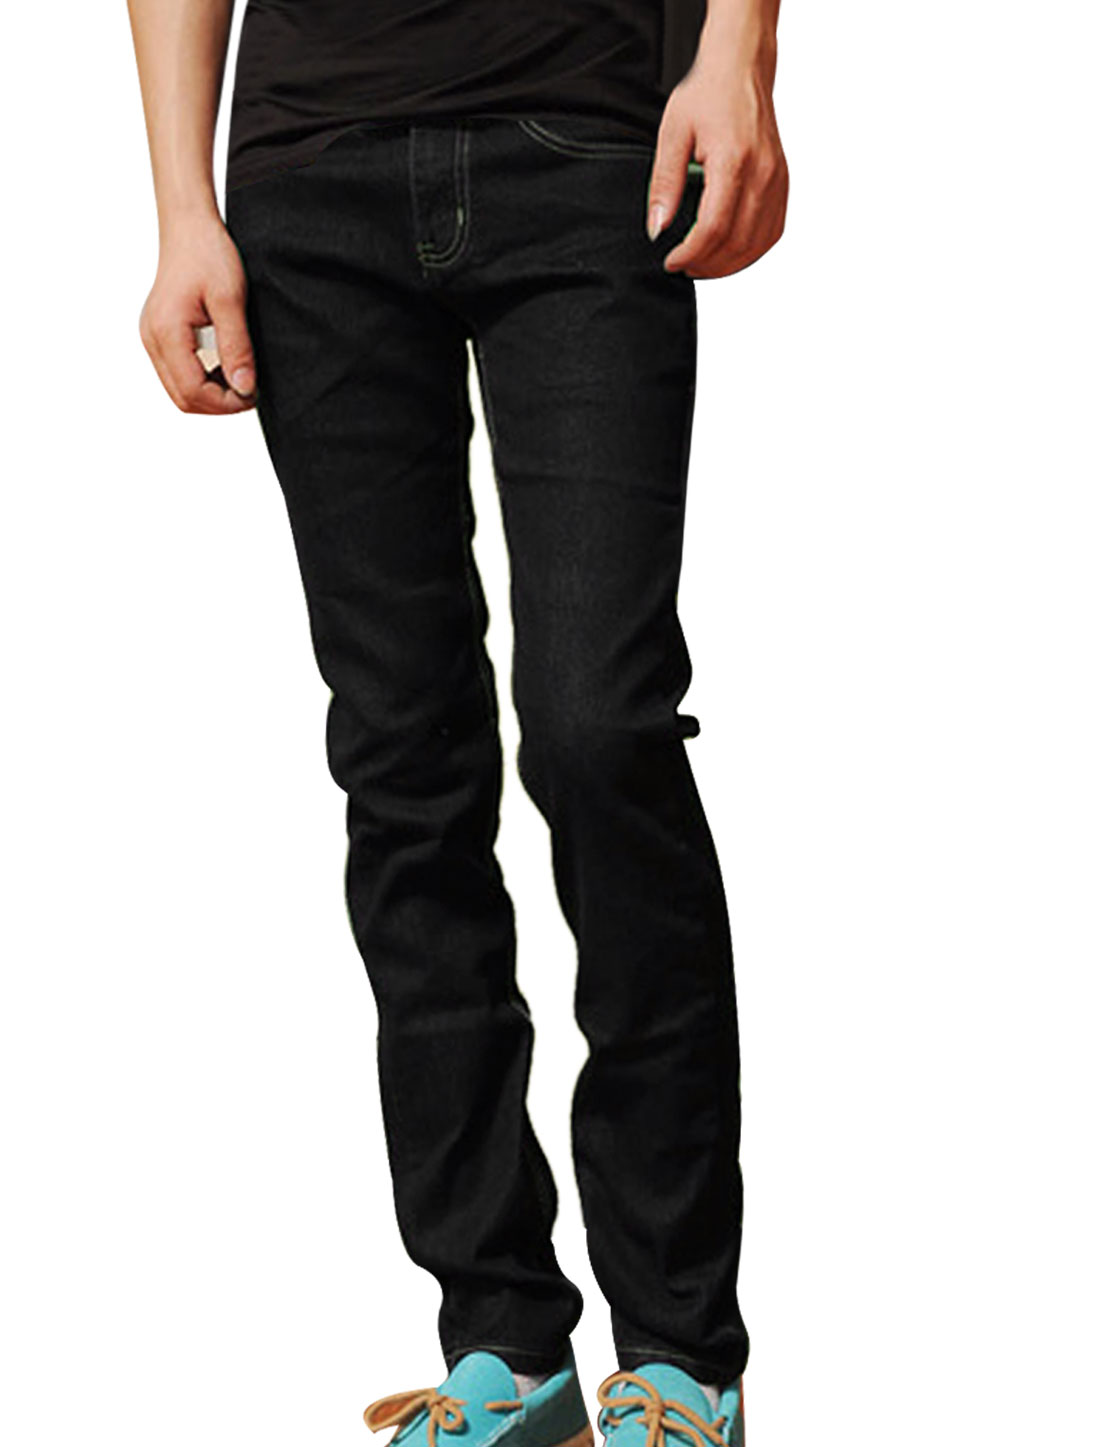 Mens Full Length One Button Zip Closure Studs Decor Black Jeans Trouser W33